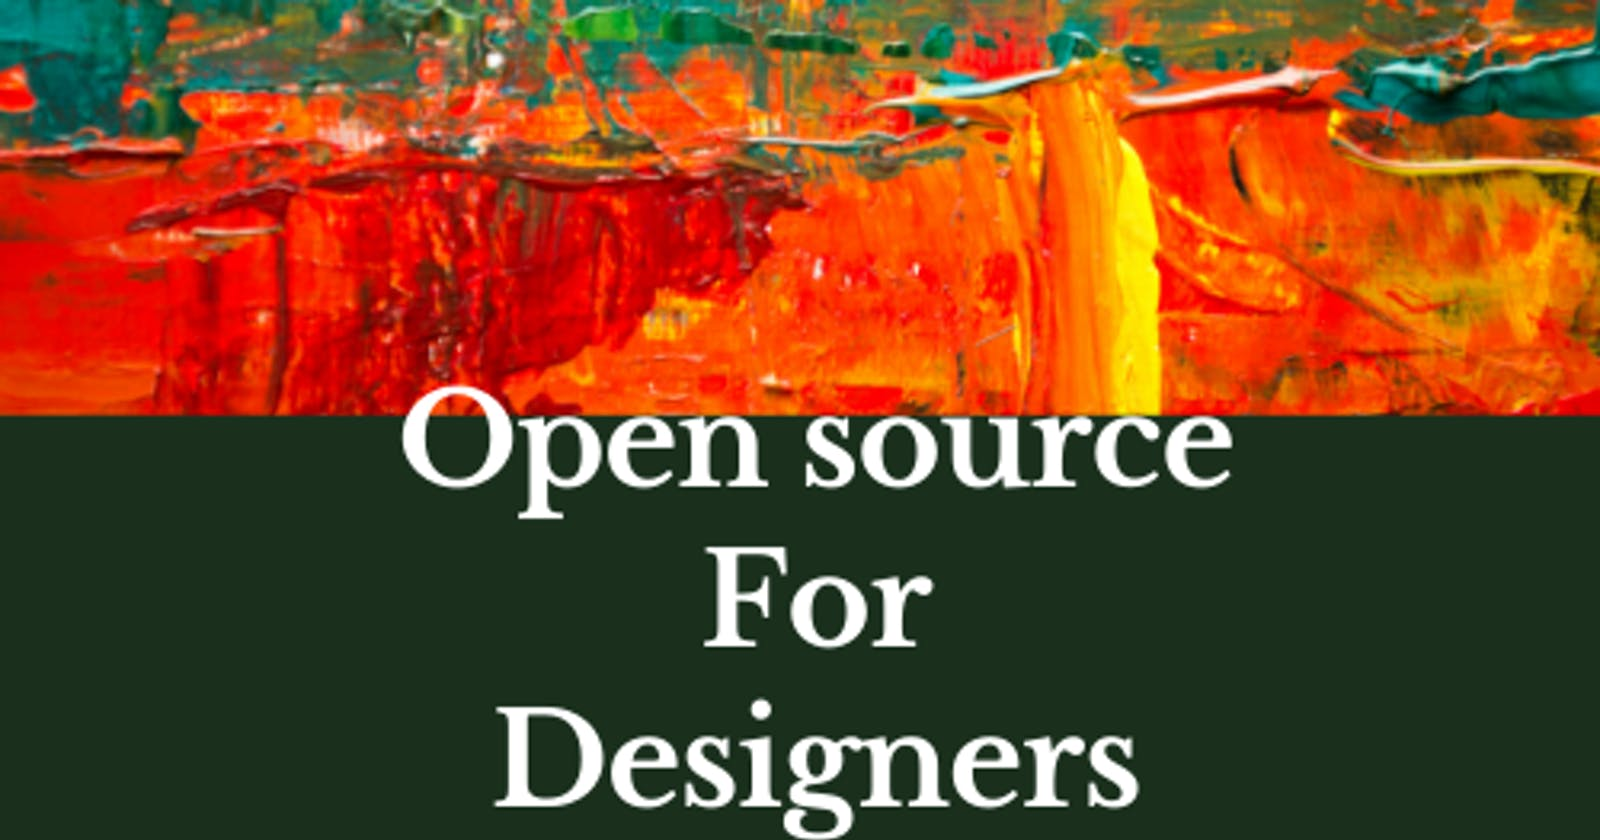 Designers can contribute to Open-source too.